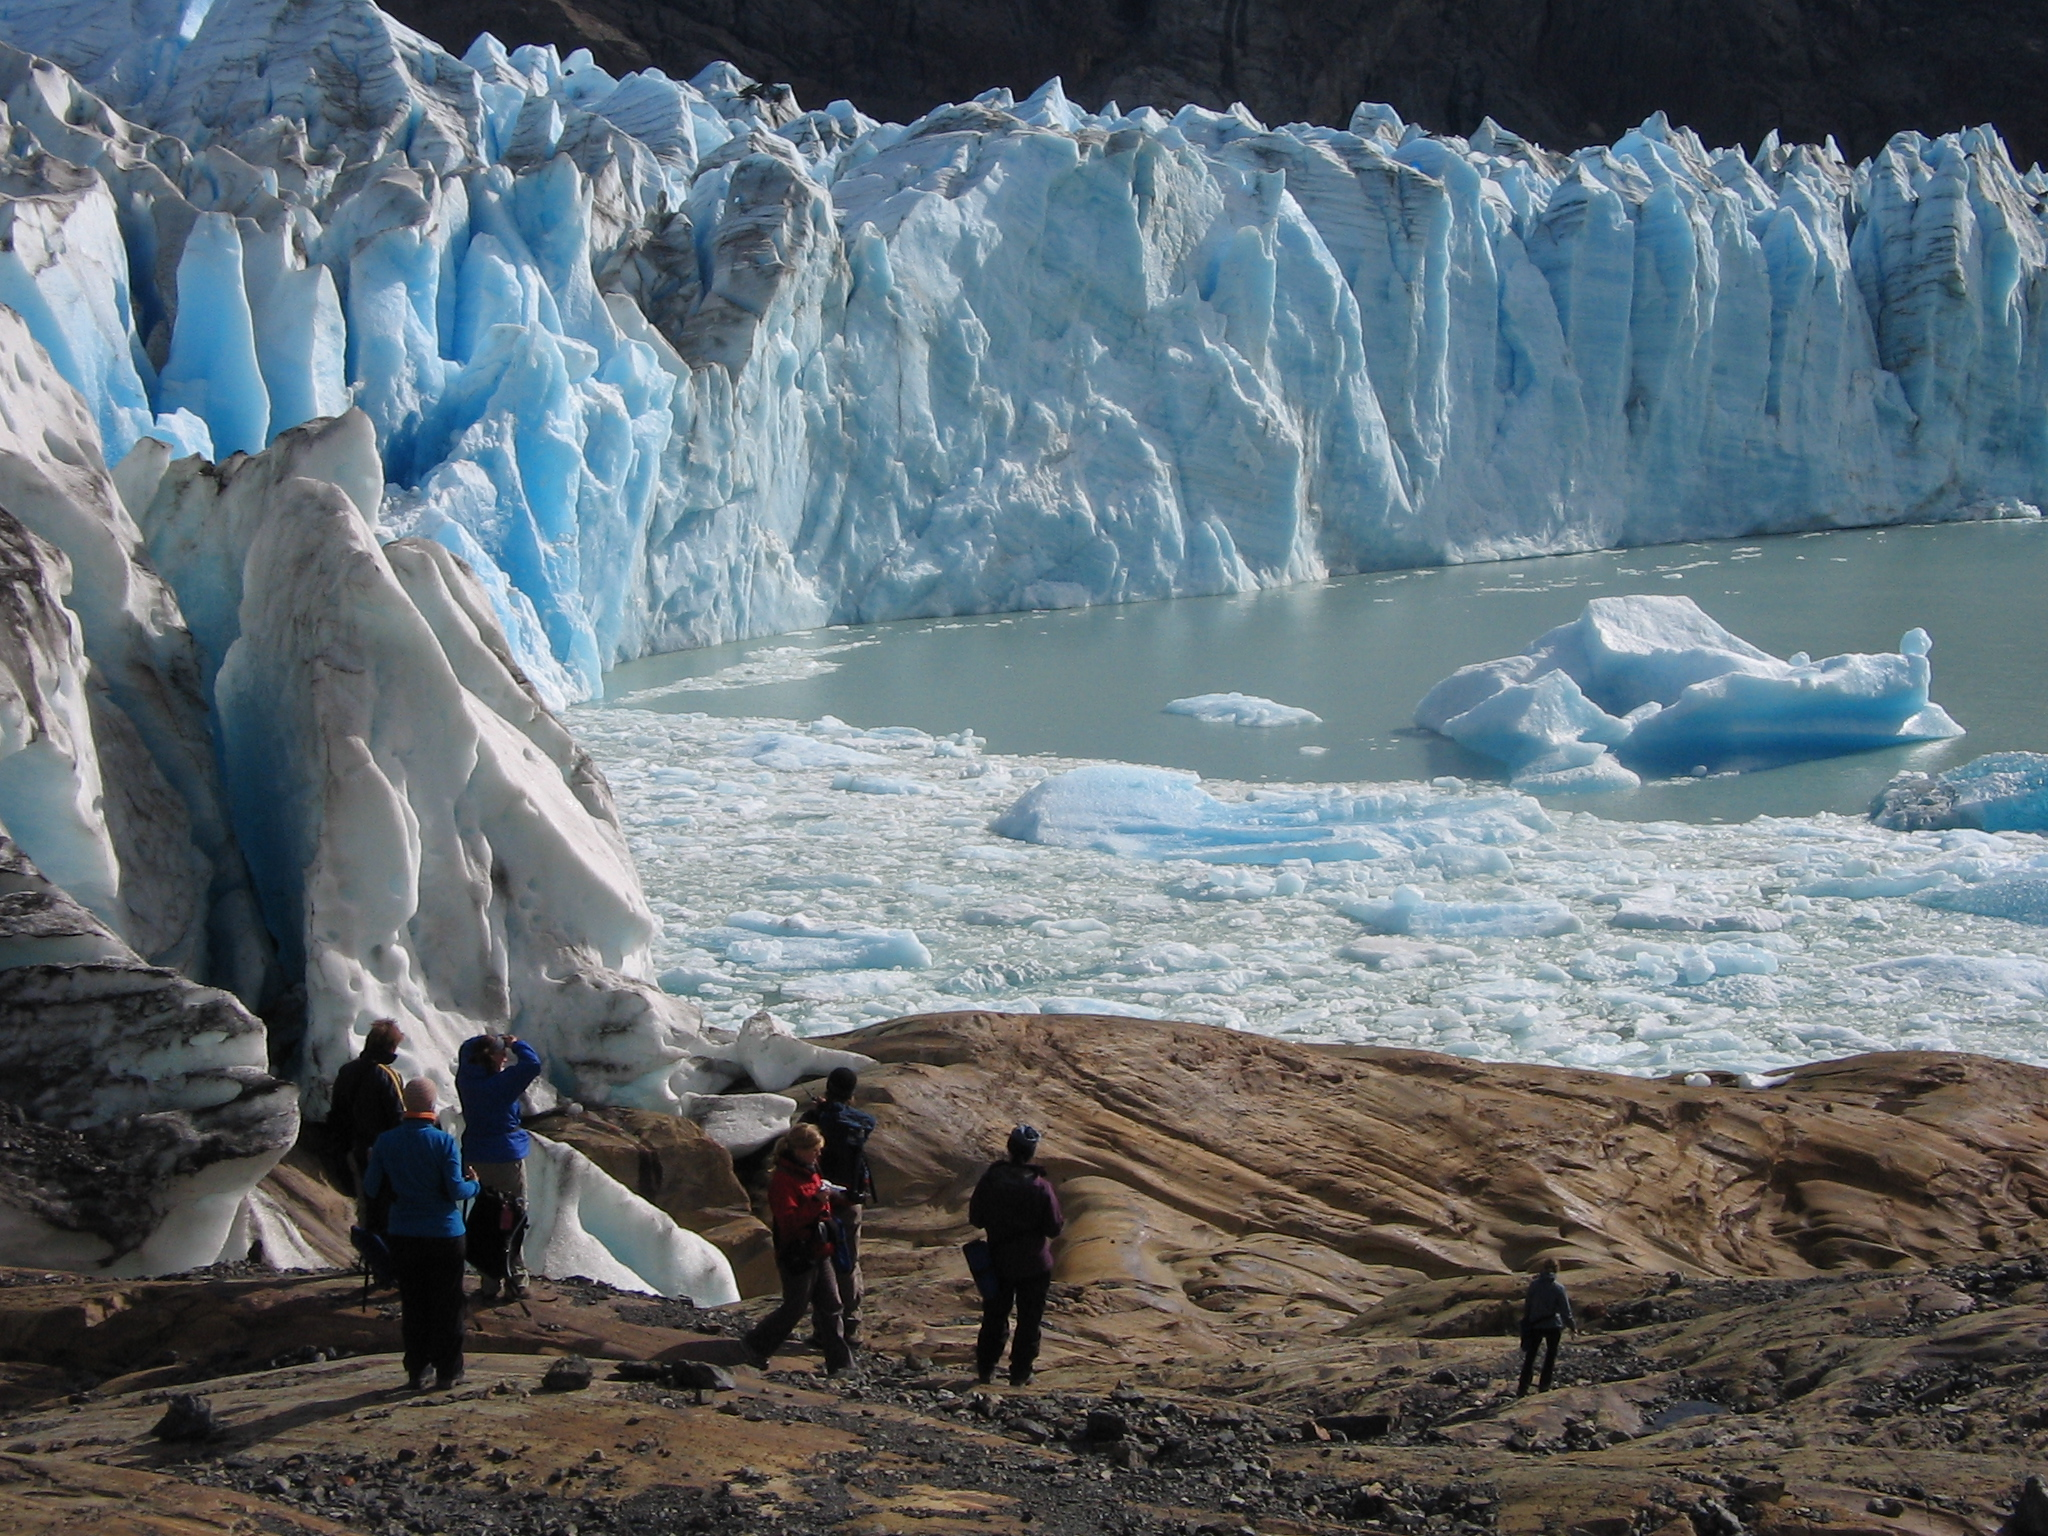 viedma-glacier-photo-by-d-semper-32